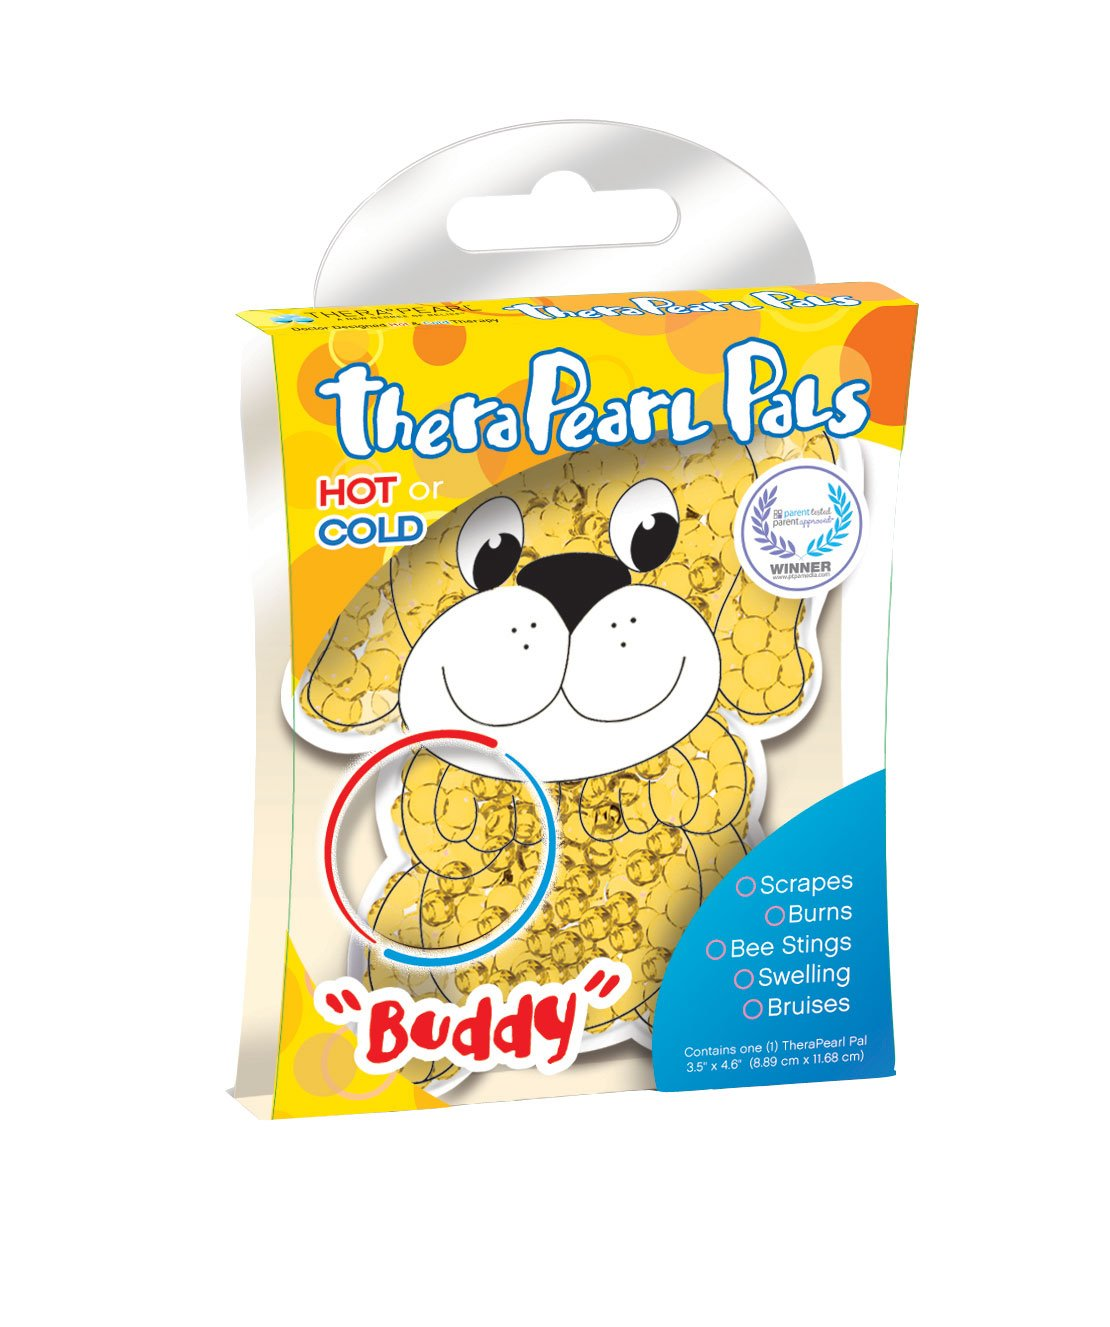 TheraPearl Children's Pals, Buddy the Puppy, Reusable Hot Cold Therapy Pack, Non Toxic Reusable Animal Shaped Hot Cold Therapy Pack, Flexible Compress for Injuries, Swelling, Pain Relief, Bee Stings